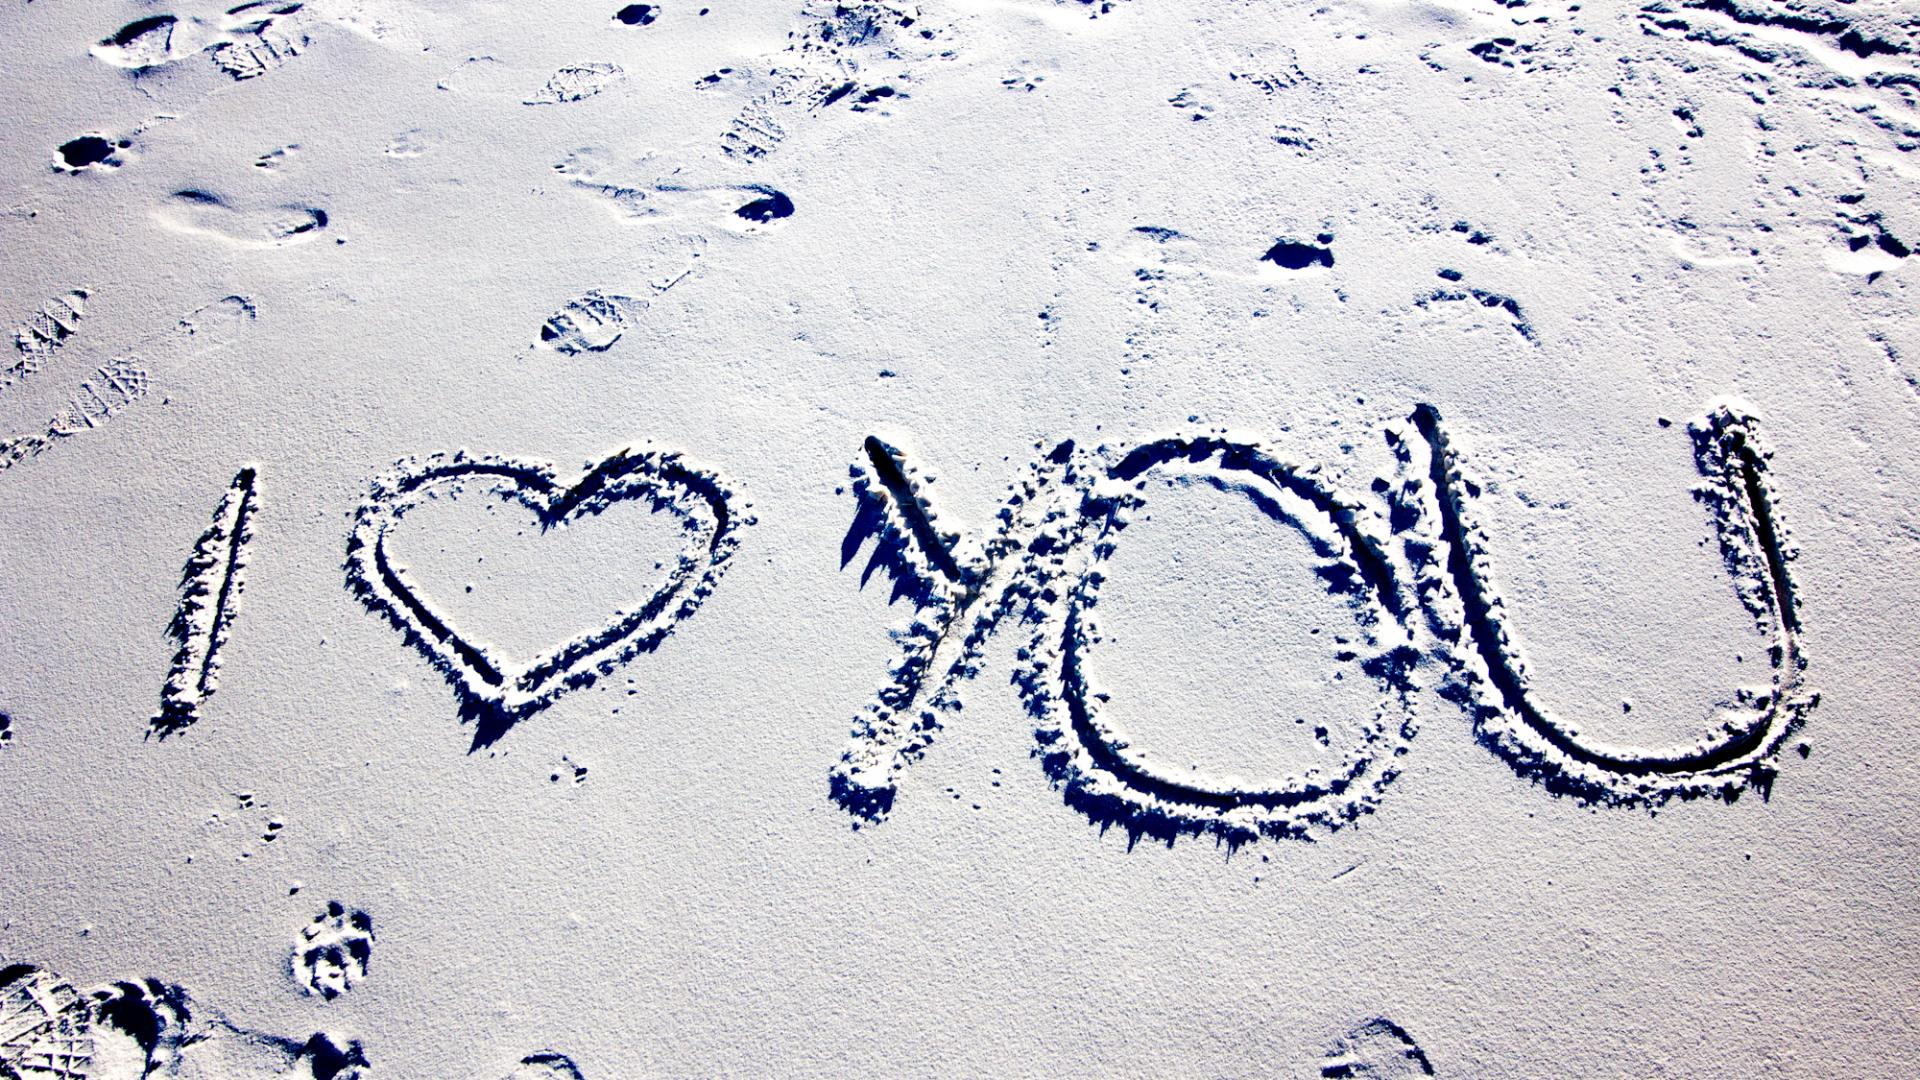 Drawn sand i love you Supported You HD Love Wallpapers